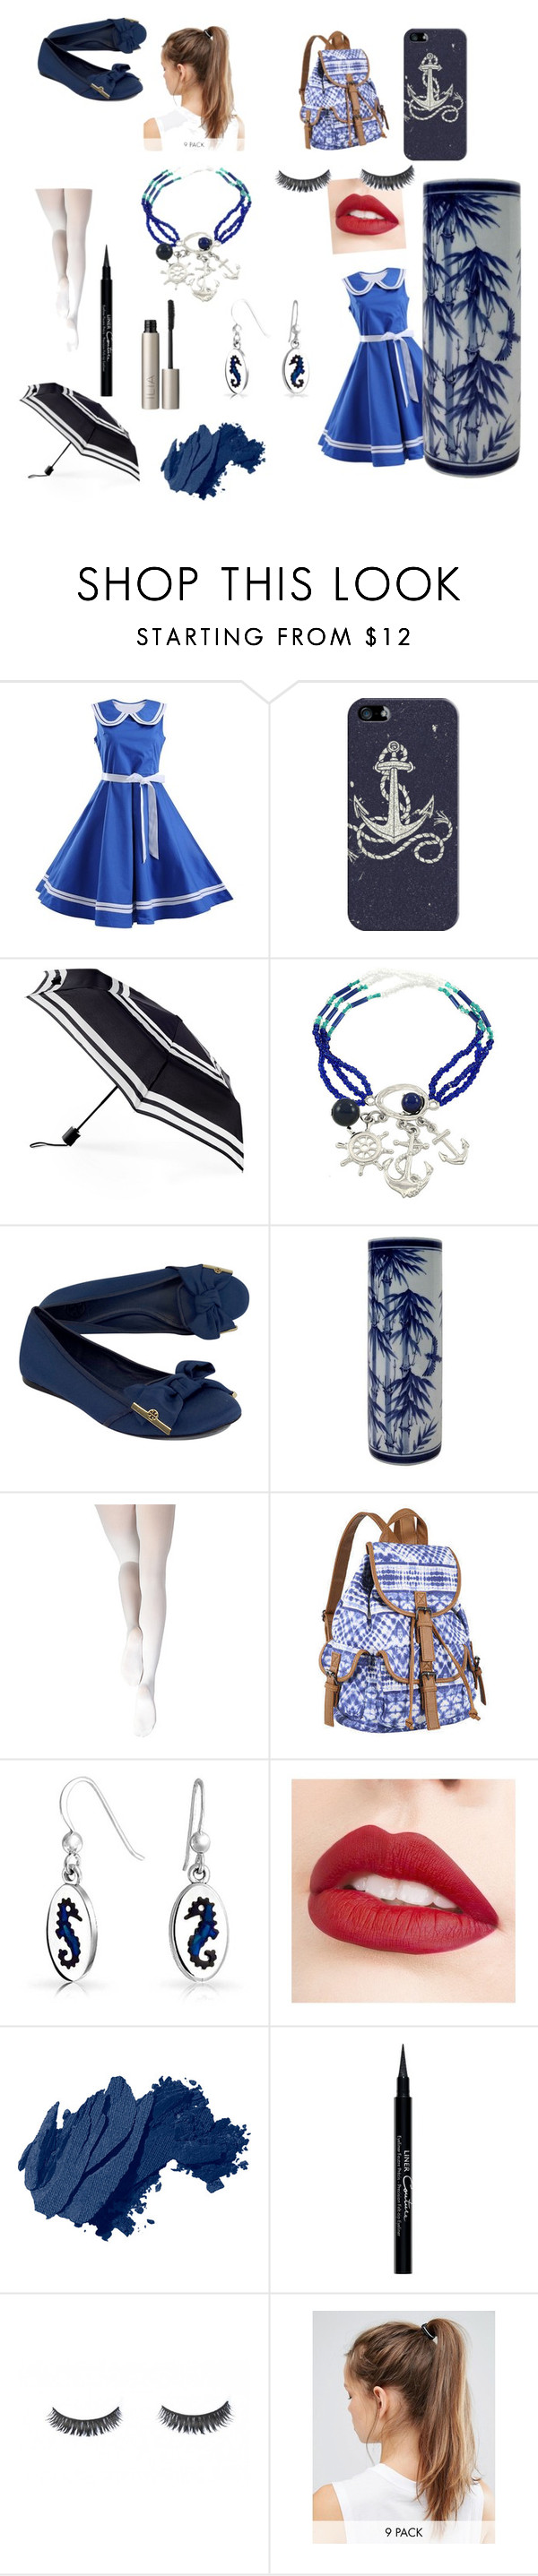 """""""Sailor outfit"""" by crowraventeen ❤ liked on Polyvore featuring Casetify, ShedRain, Tory Burch, Capezio Dance, Bling Jewelry, Jouer, Bobbi Brown Cosmetics, Givenchy, NIKE and Ilia"""